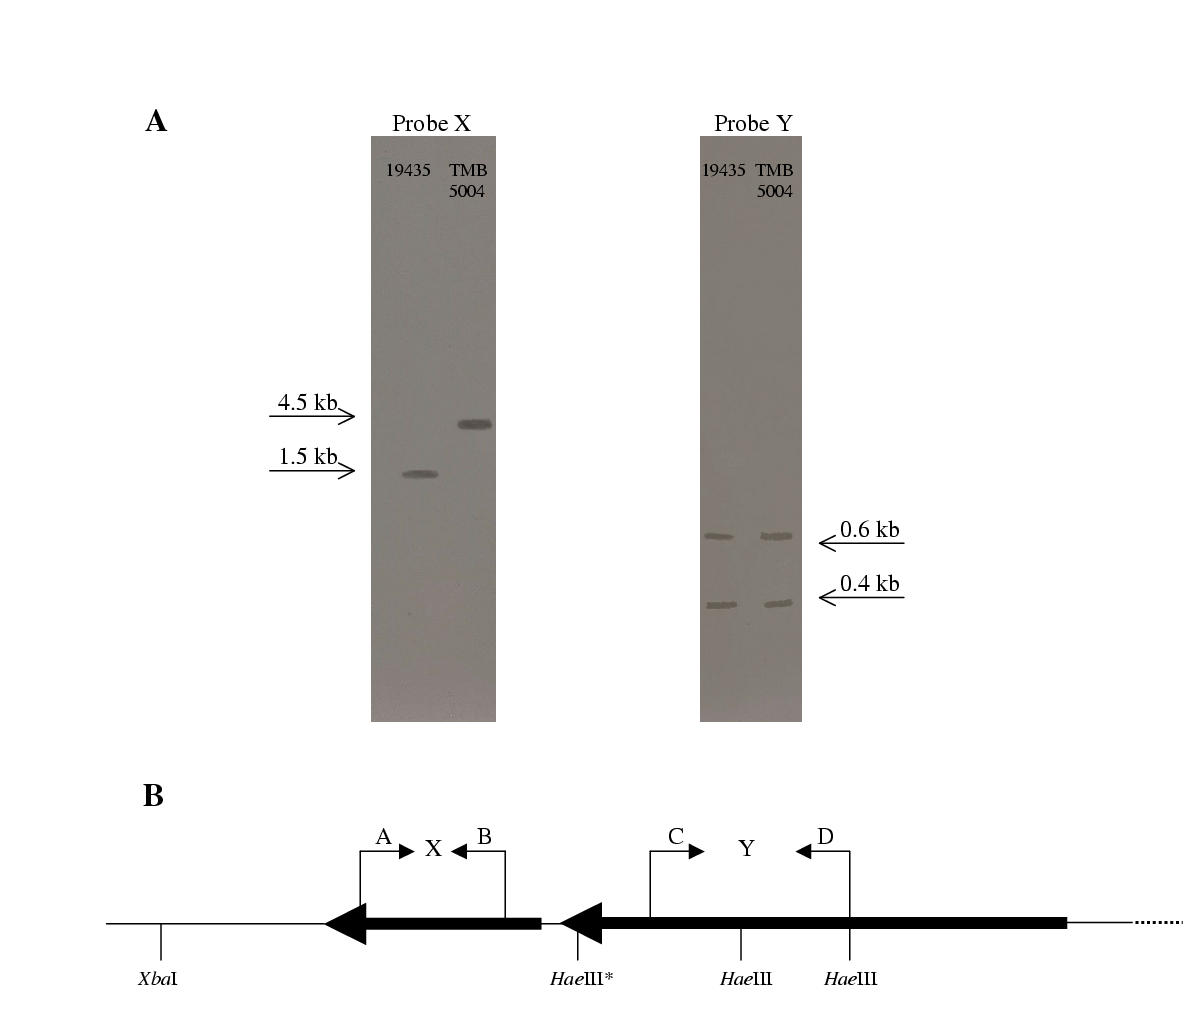 http://static-content.springer.com/image/art%3A10.1186%2F1471-2180-2-28/MediaObjects/12866_2002_Article_62_Fig2_HTML.jpg